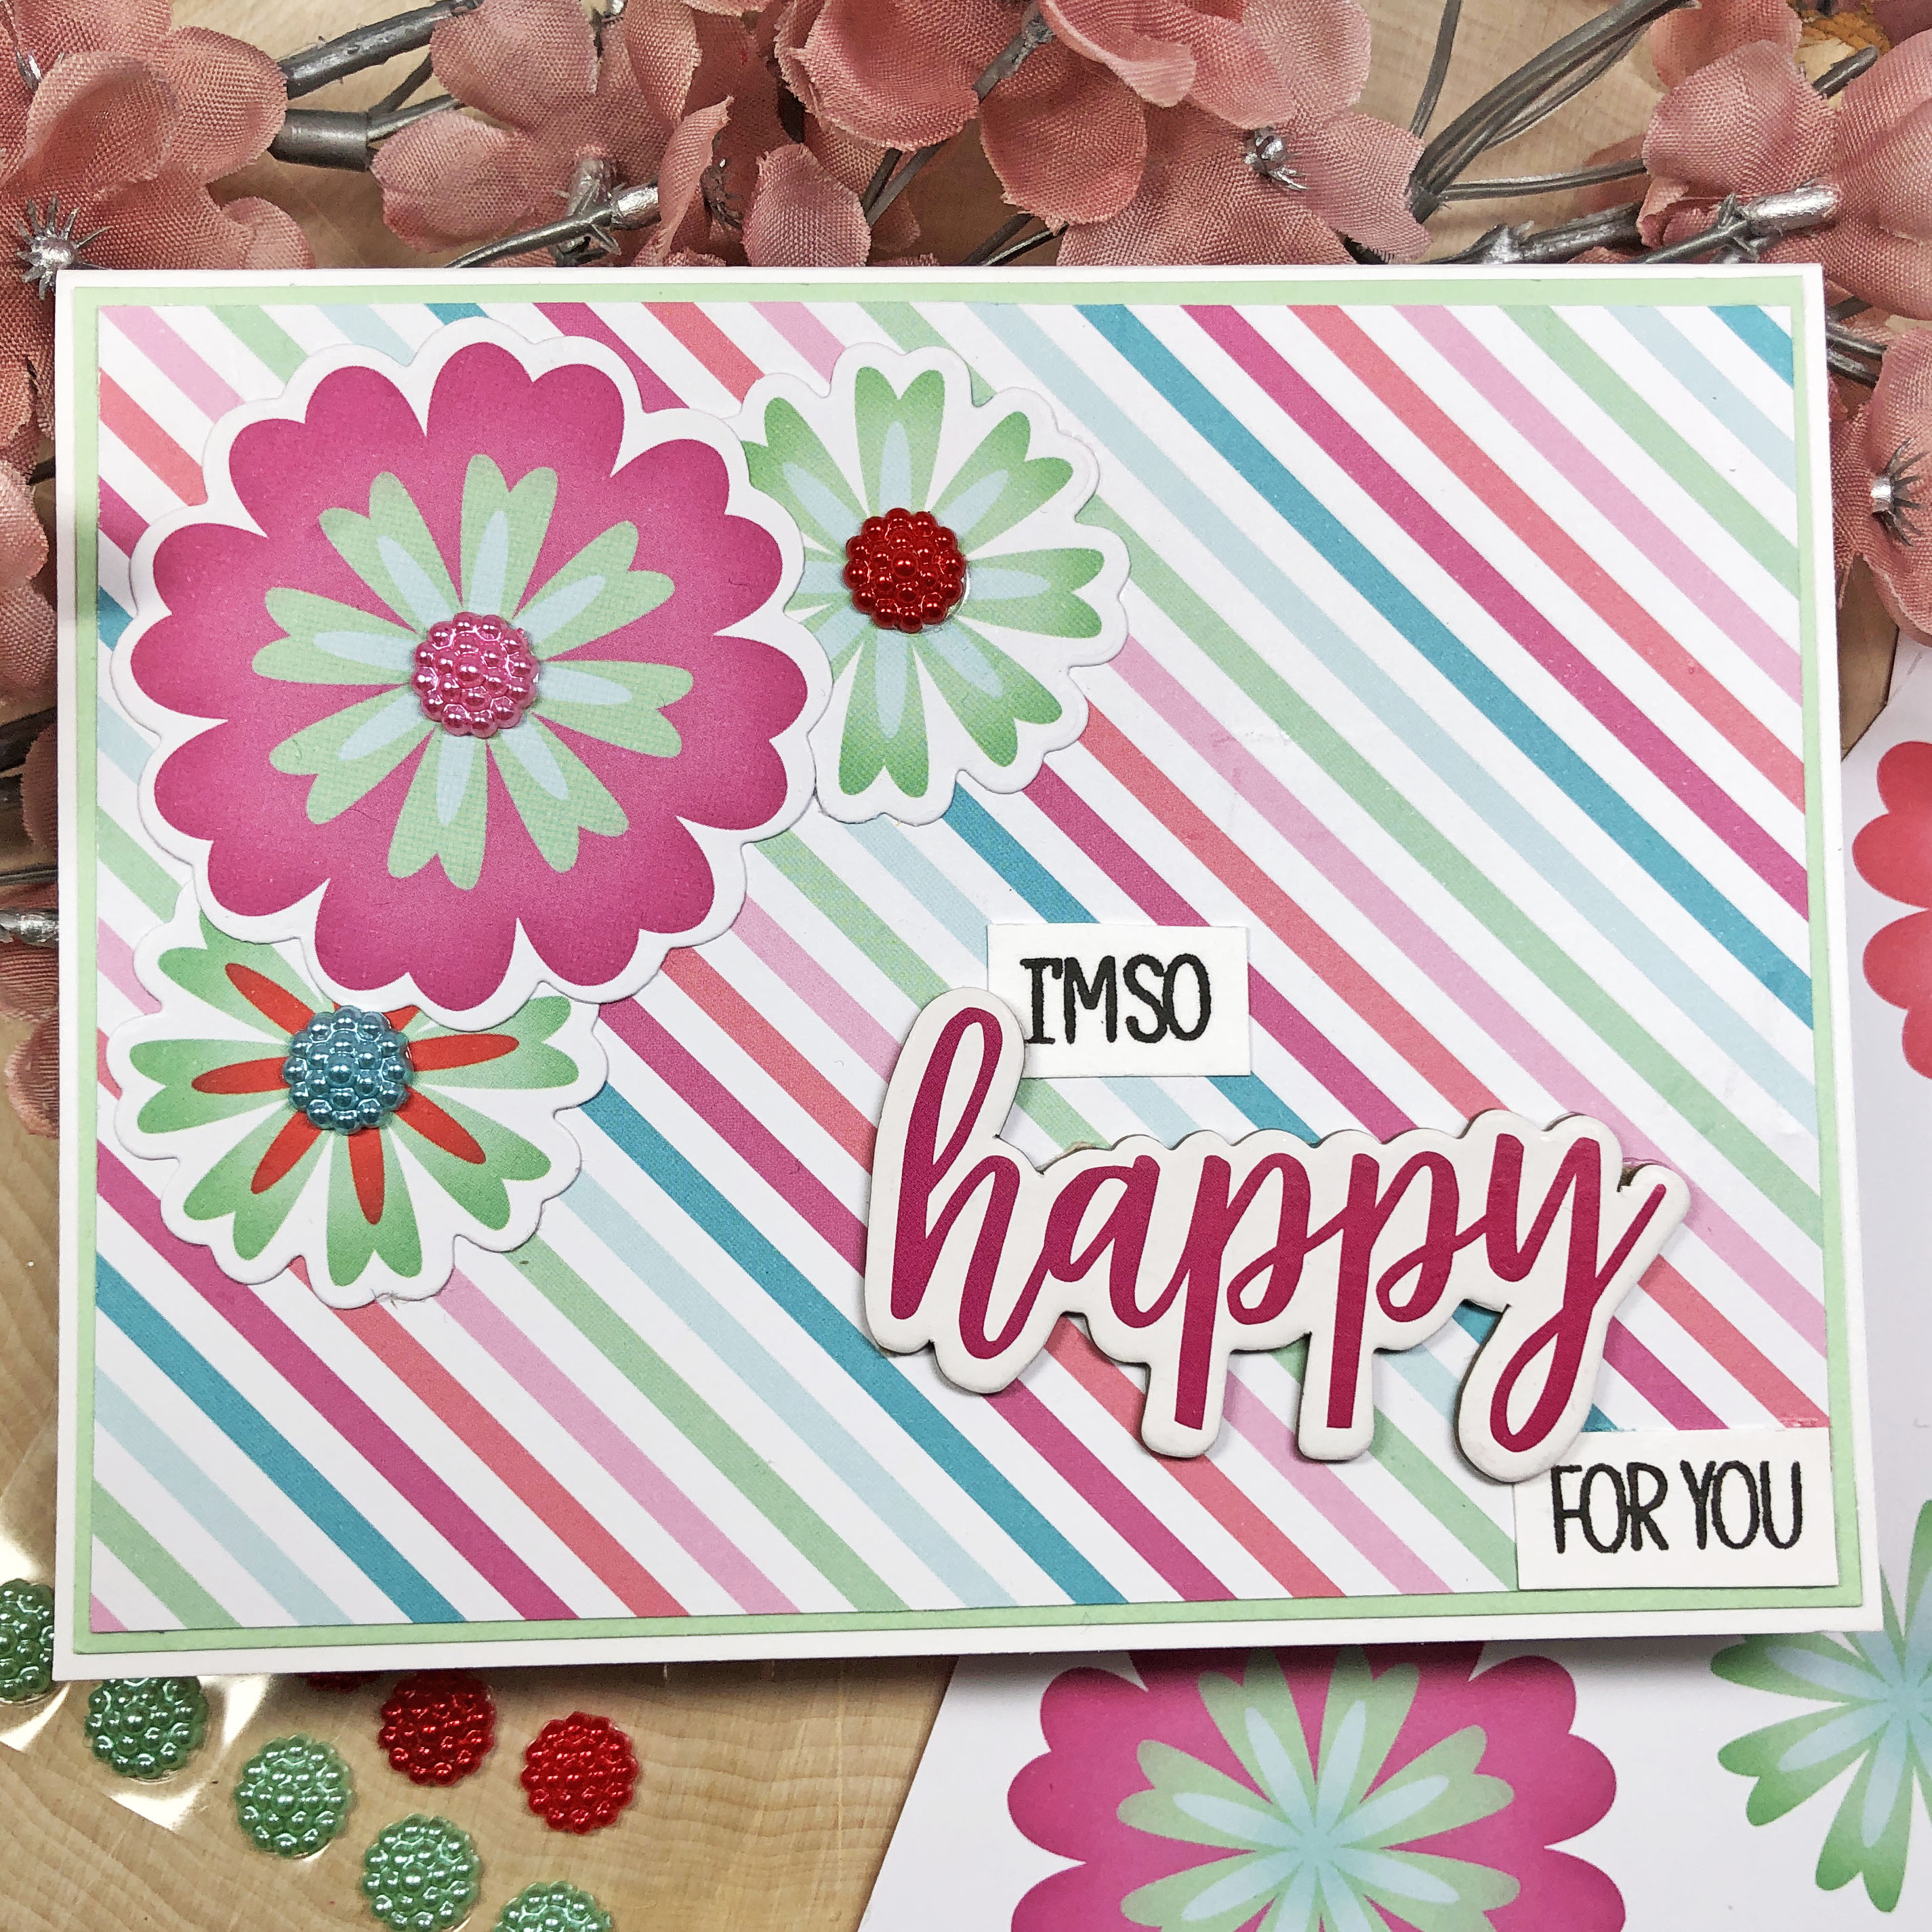 The Stamps of Life December 2019 Card Kit - 6 Card Tutorial using the card kit and Flower2BuildOne dies.